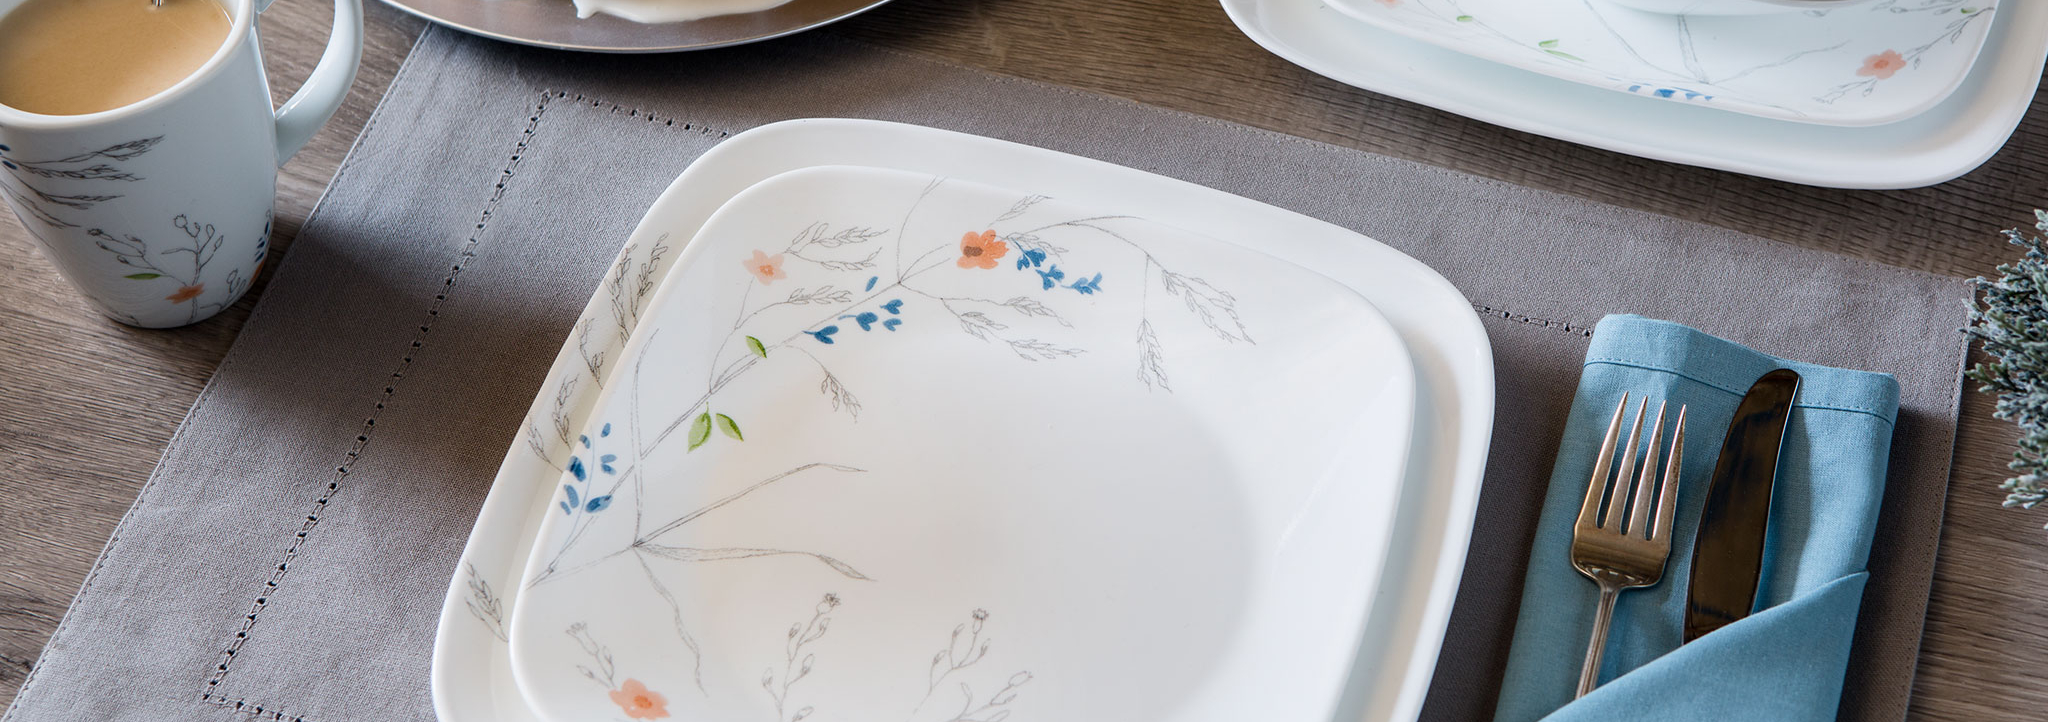 Buy 4 Save 30% Corelle Open Stock